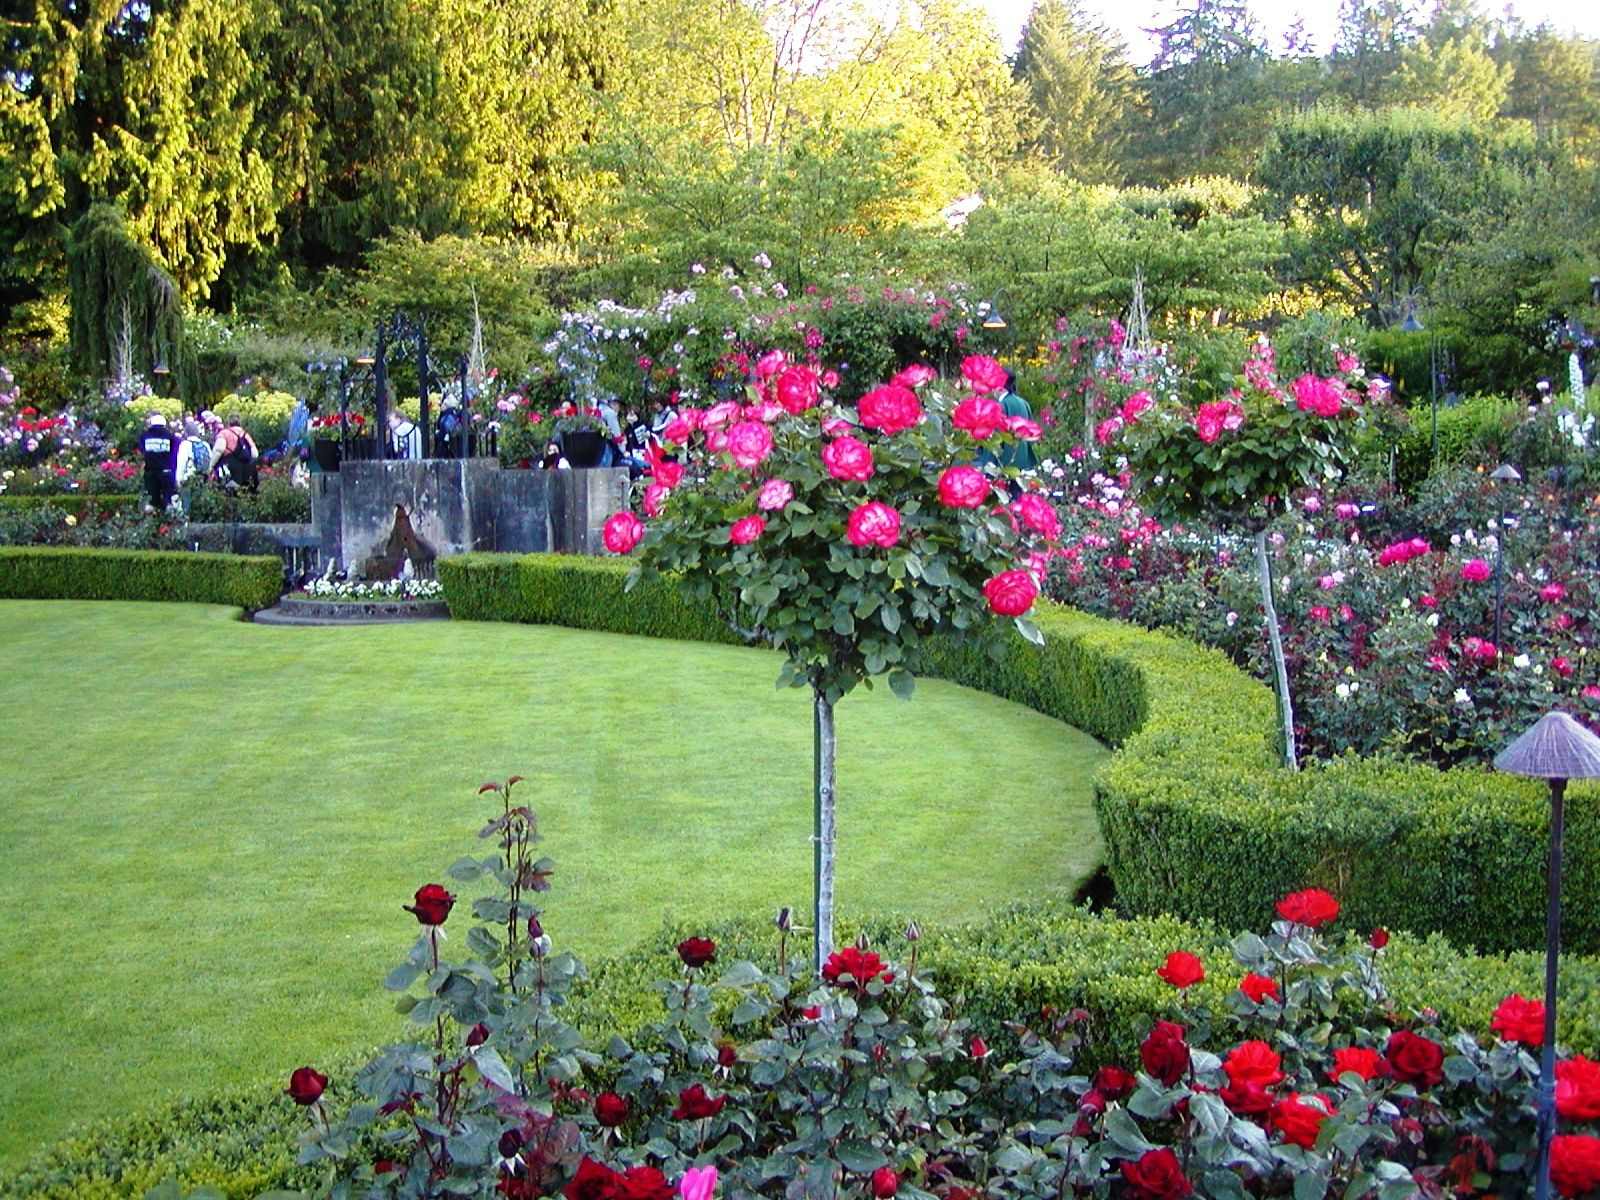 He Rose Garden Puts Me On Scenic Overload It 39 S Almost Too Much To